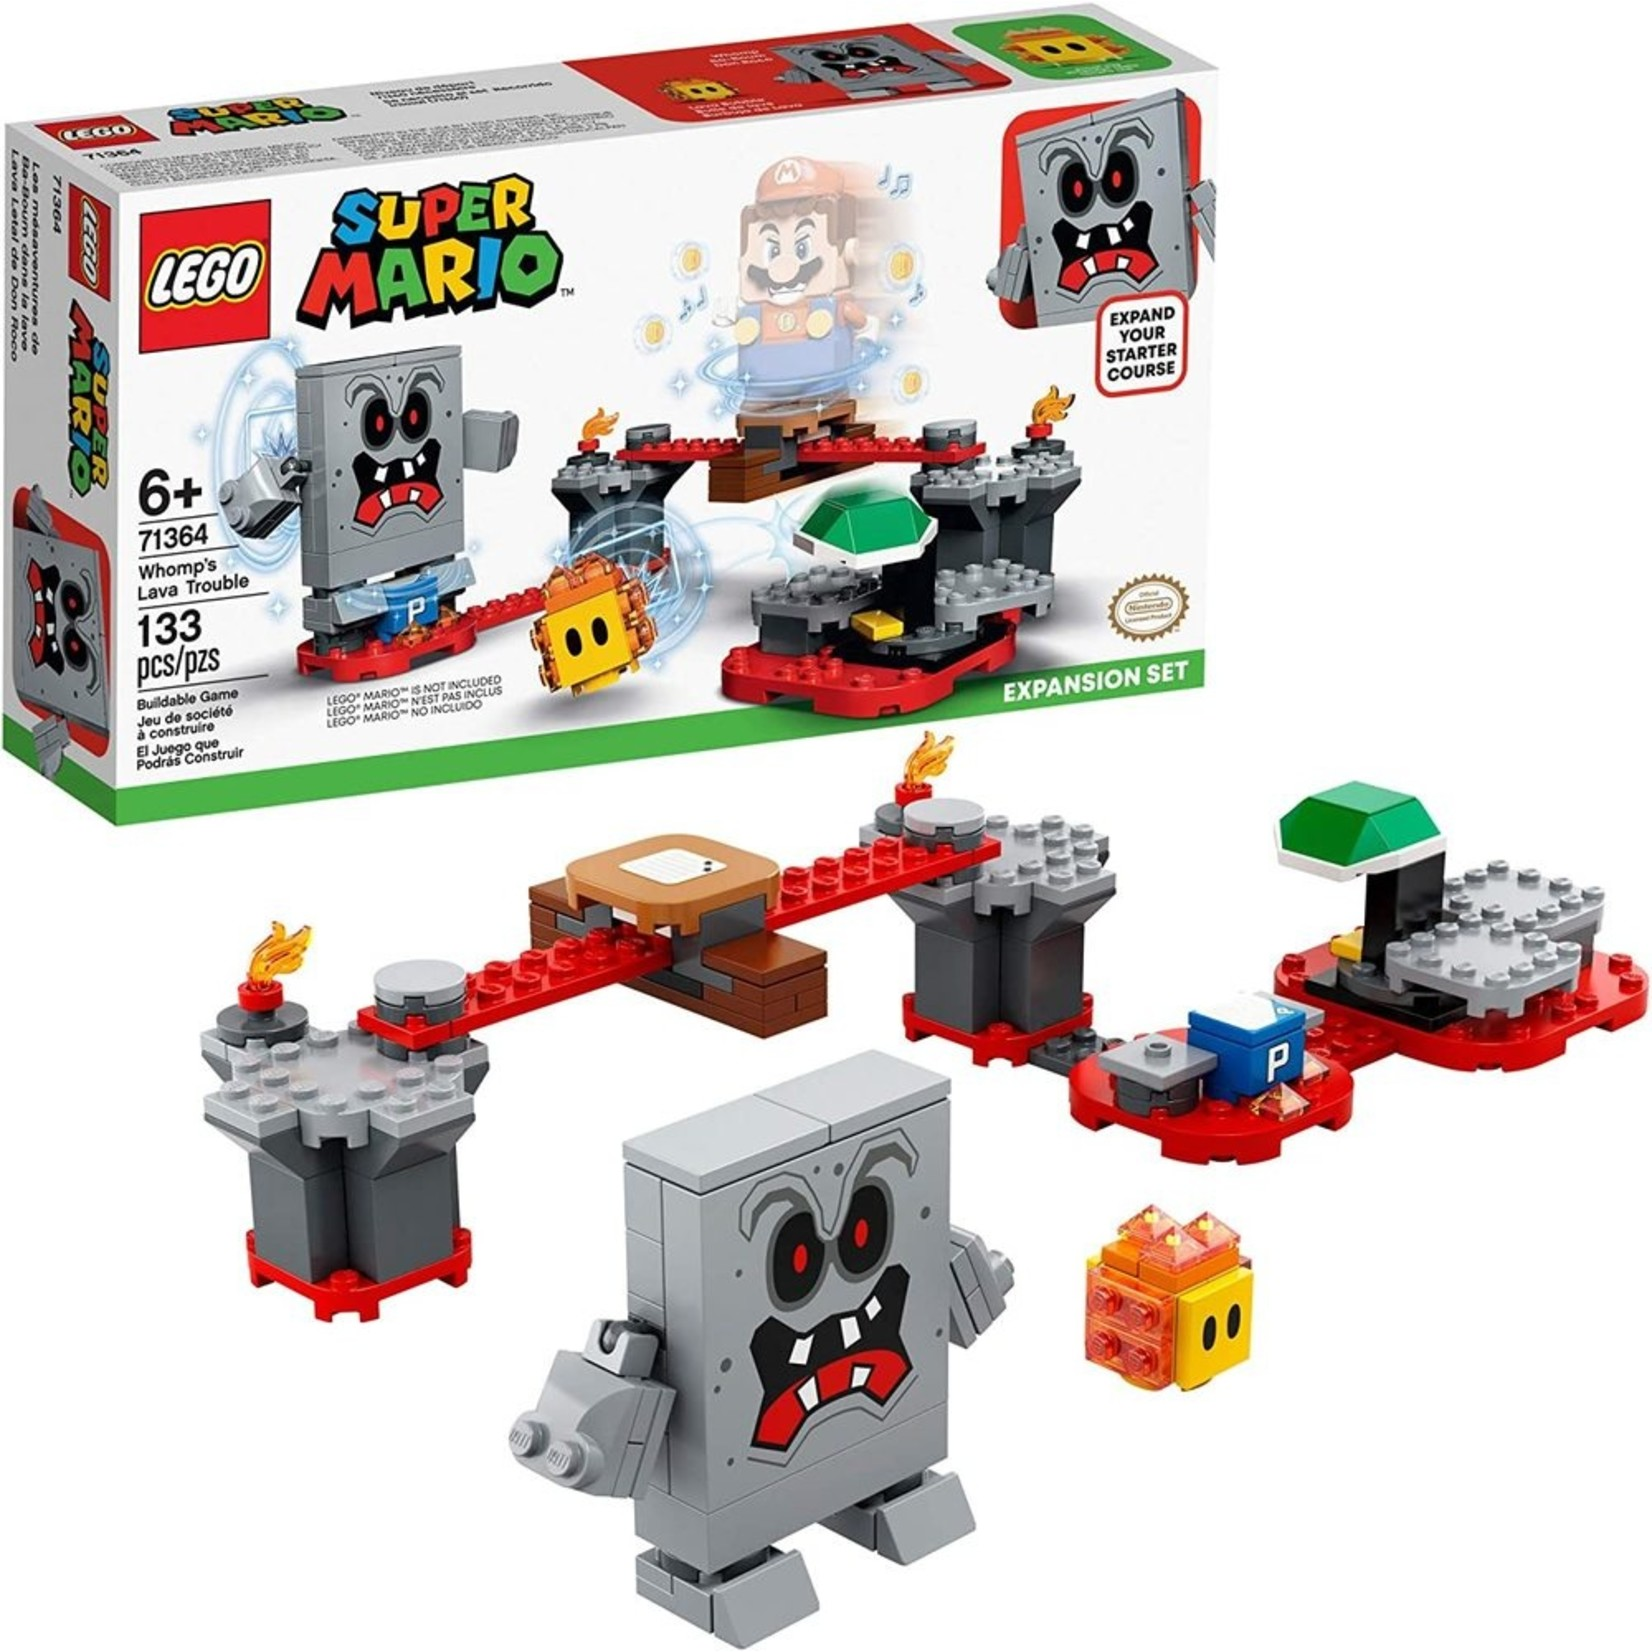 LEGO 71364 WHOMP'S LAVA TROUBLE EXPANSION SET